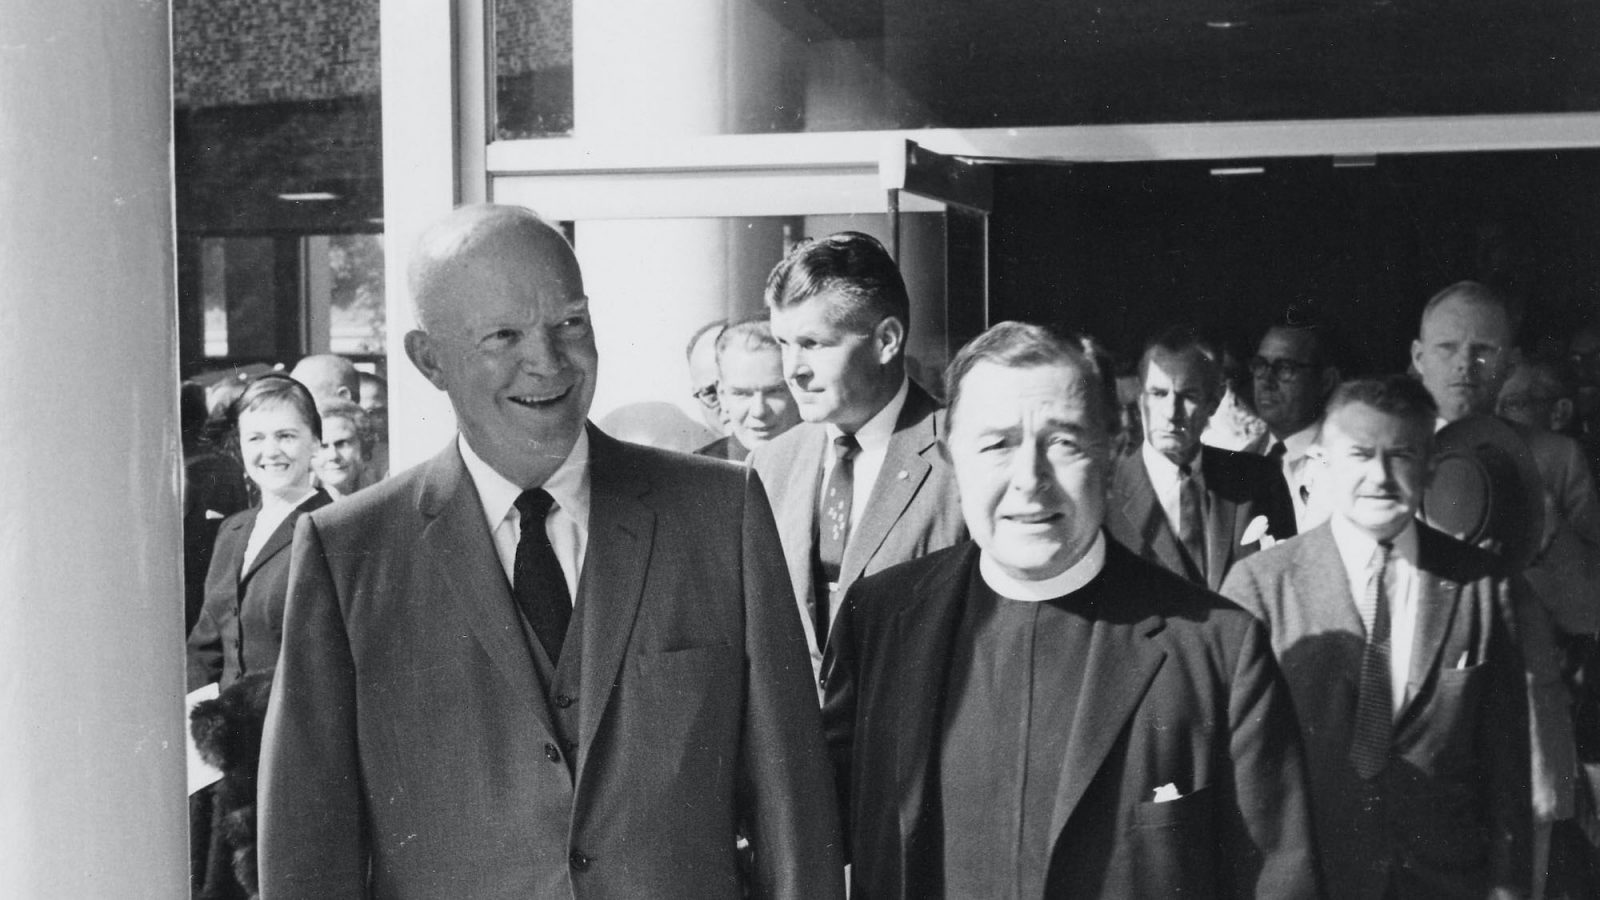 A black and white photograph of President Dwight Eisenhower exiting the Walsh Building with Father Edward B. Bunn